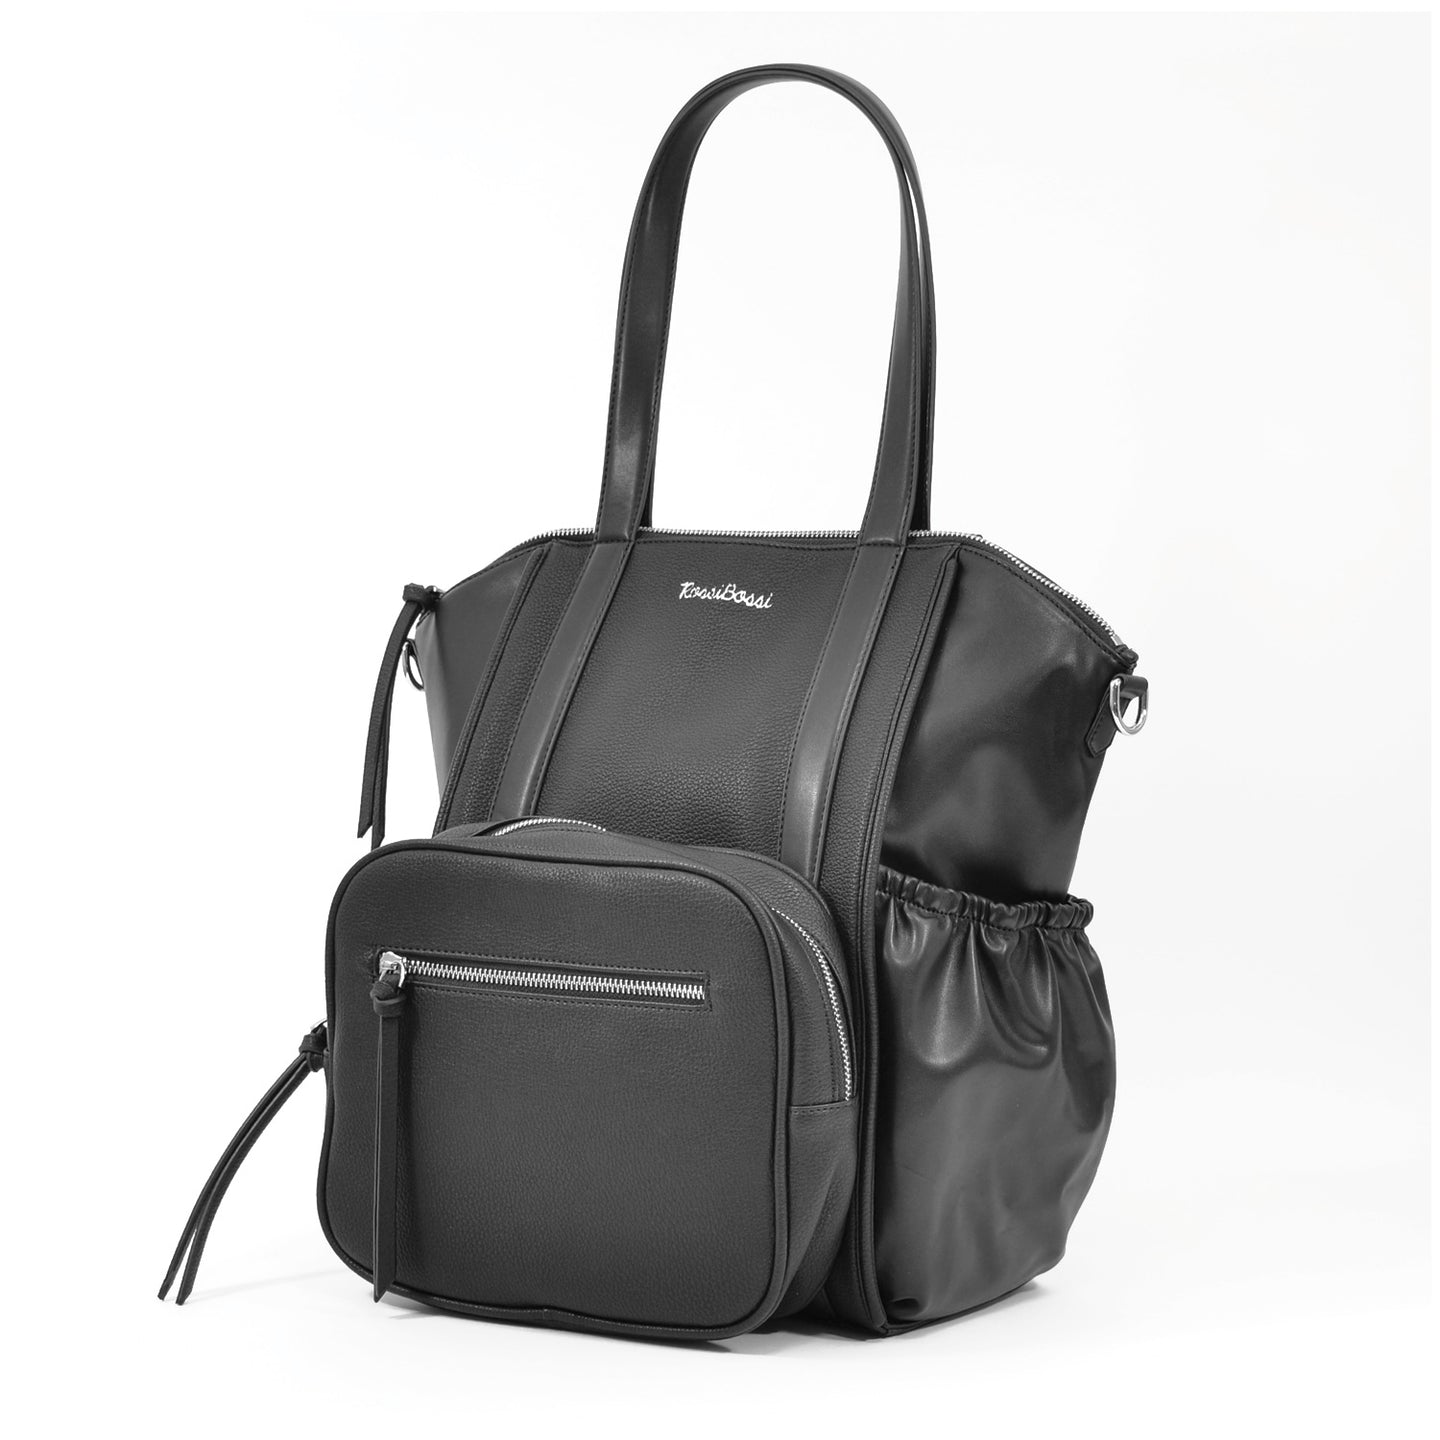 OLIVIA Diaper Bag (Black)